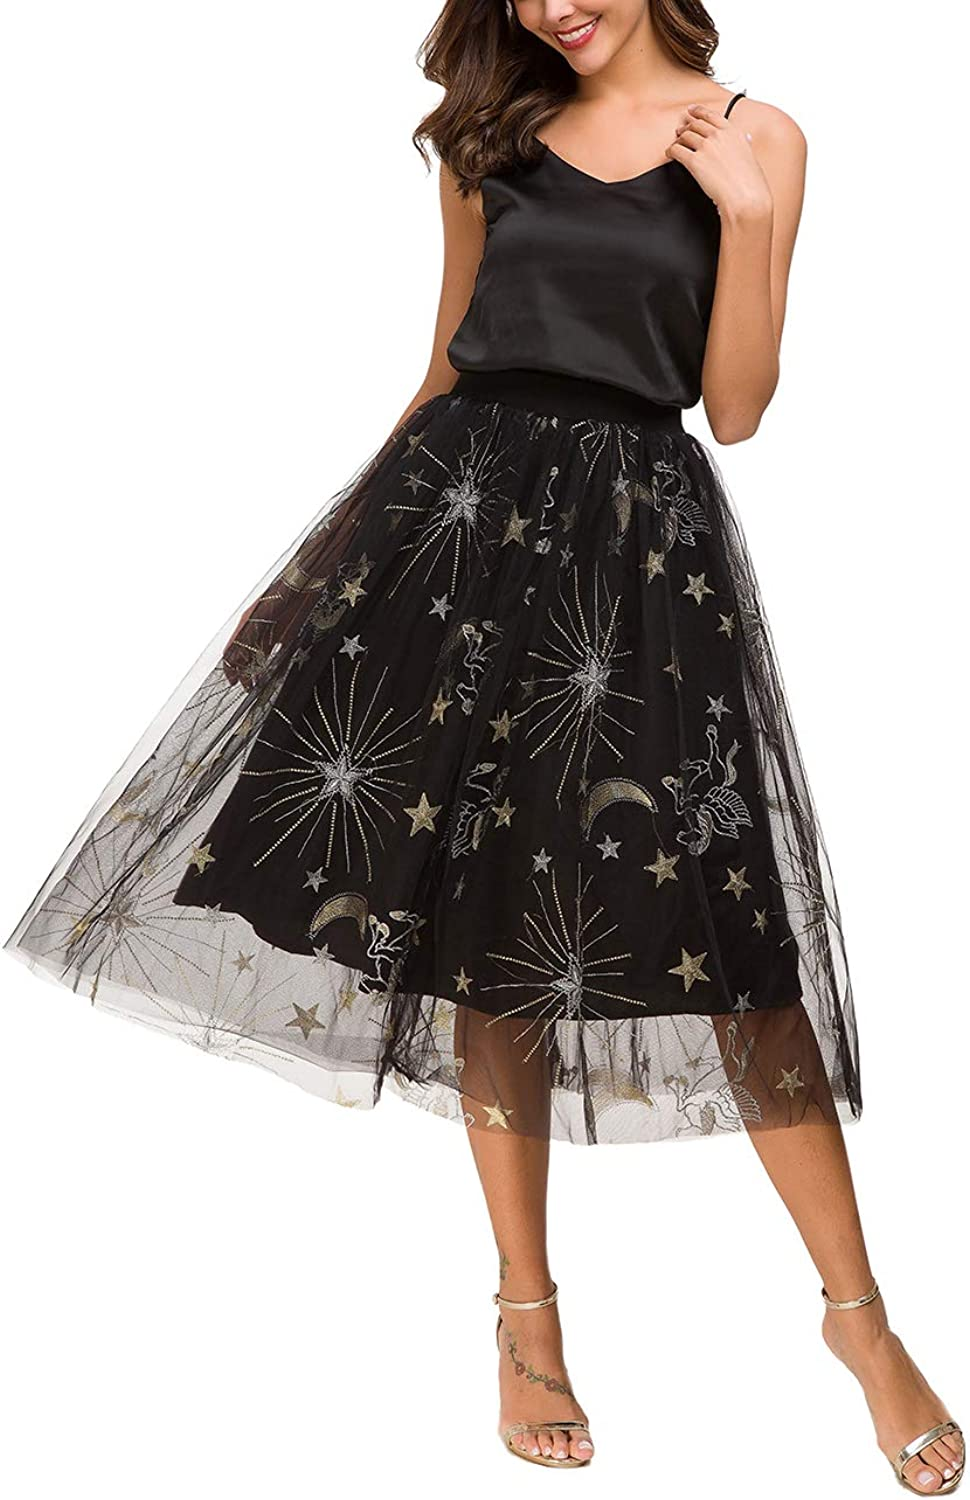 Alcea pinka Women's A Line Short Knee Length Embroidered Beading Tutu Tulle Prom Party Skirt